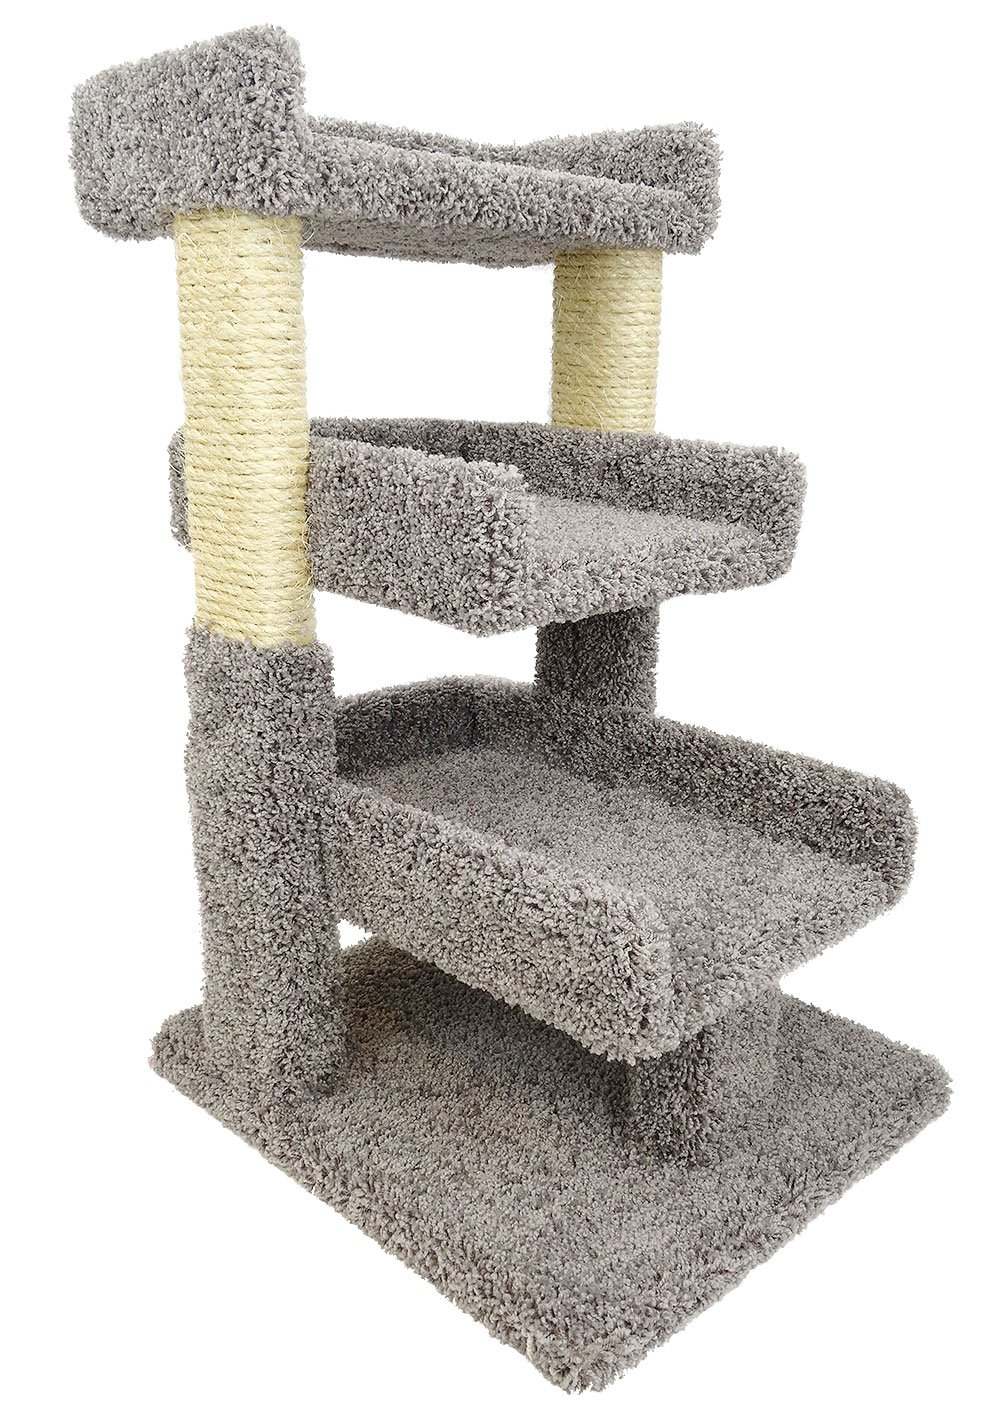 New Cat Condos 110029-Brown-Parent Premier Triple Cat Perch, Gray by New Cat Condos